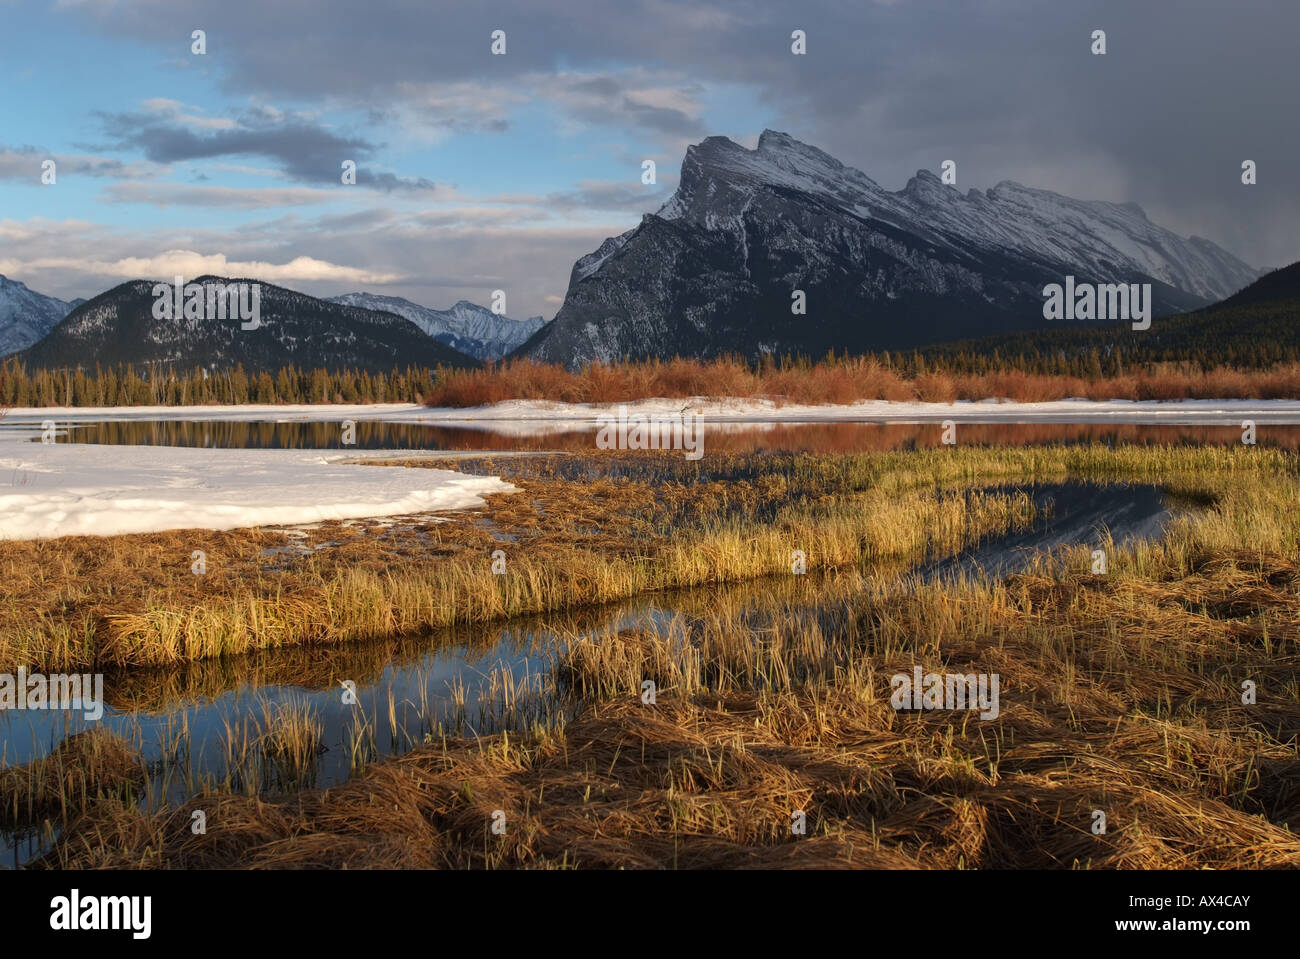 canada-alberta-banff-banff-national-park-view-of-mount-rundle-from-AX4CAY.jpg